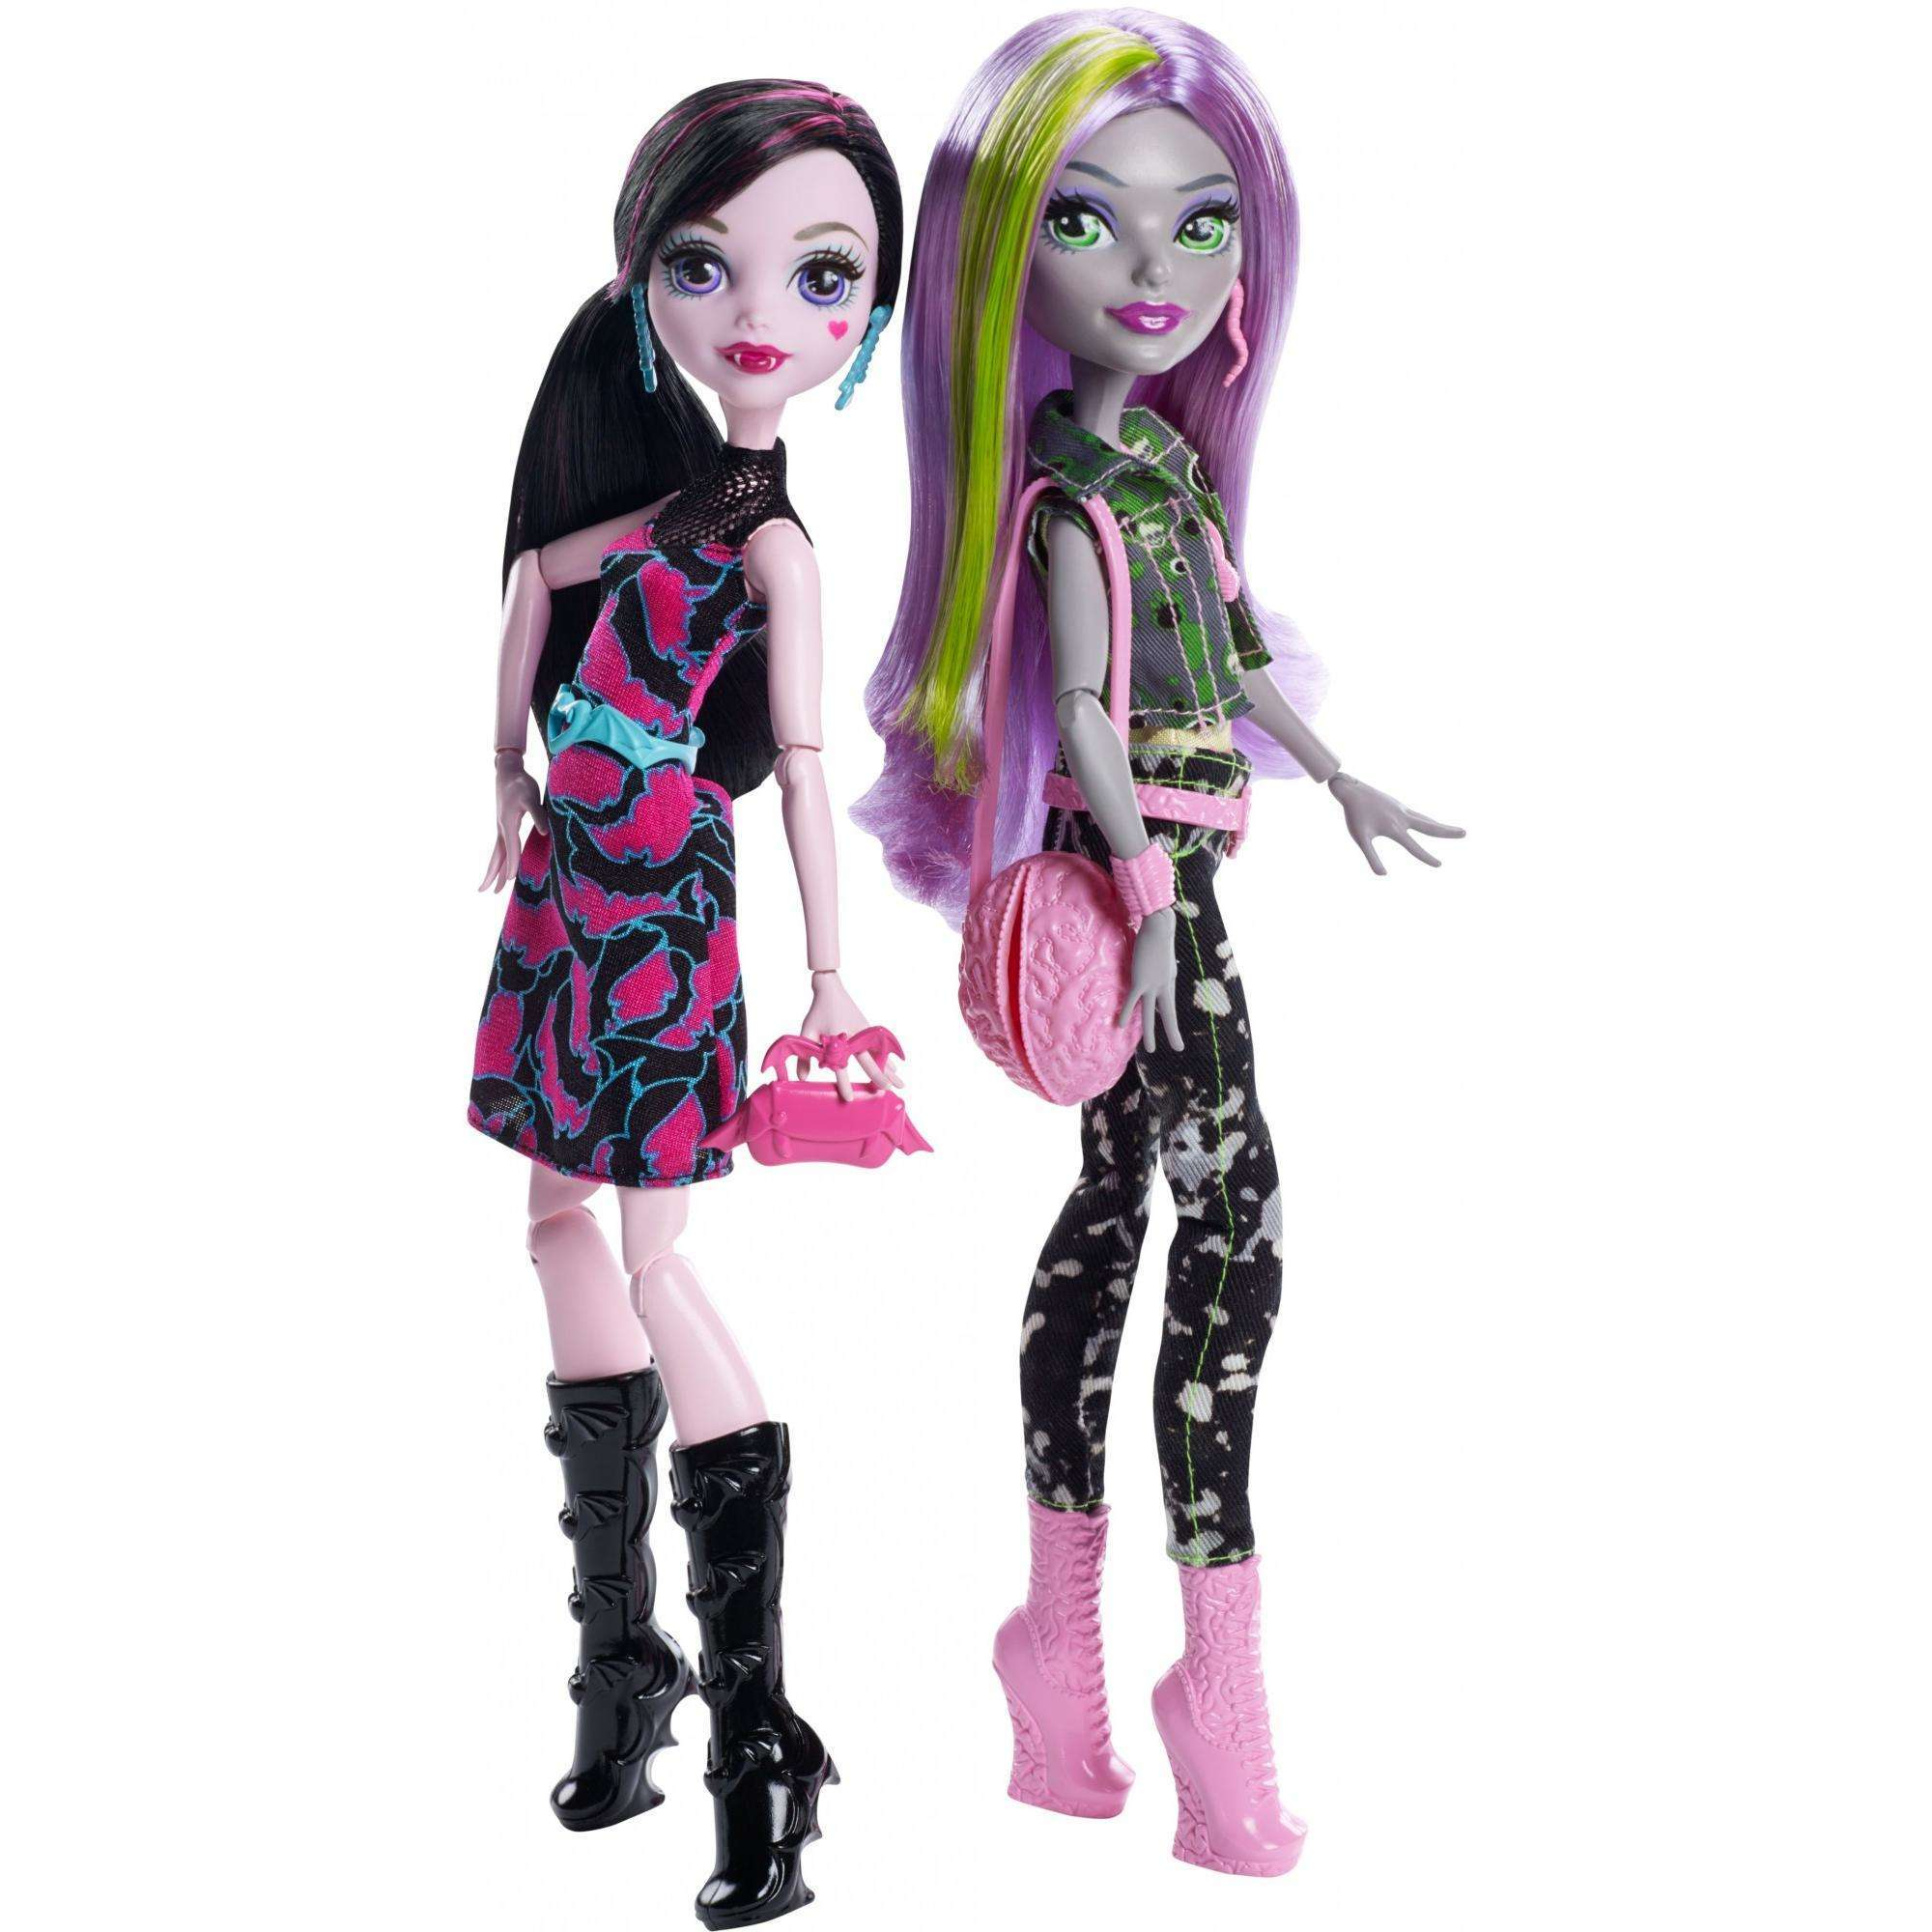 Monster High Welcome to Monster High Monstrous Rivals Draculaura and Moanica Doll 2-Pack